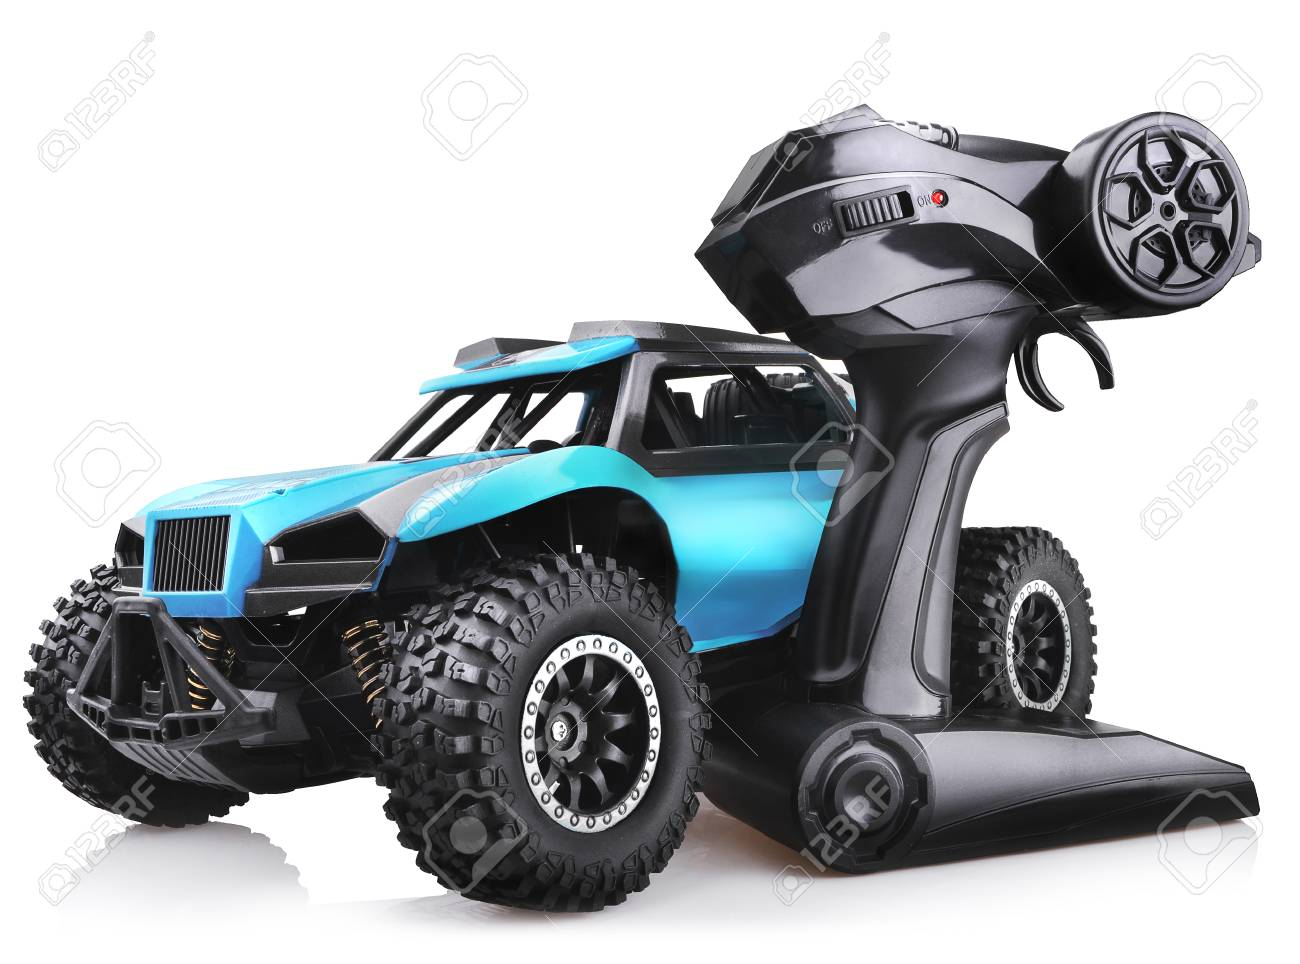 RC model rally car toy, offroad buggy with remote control  Isolated